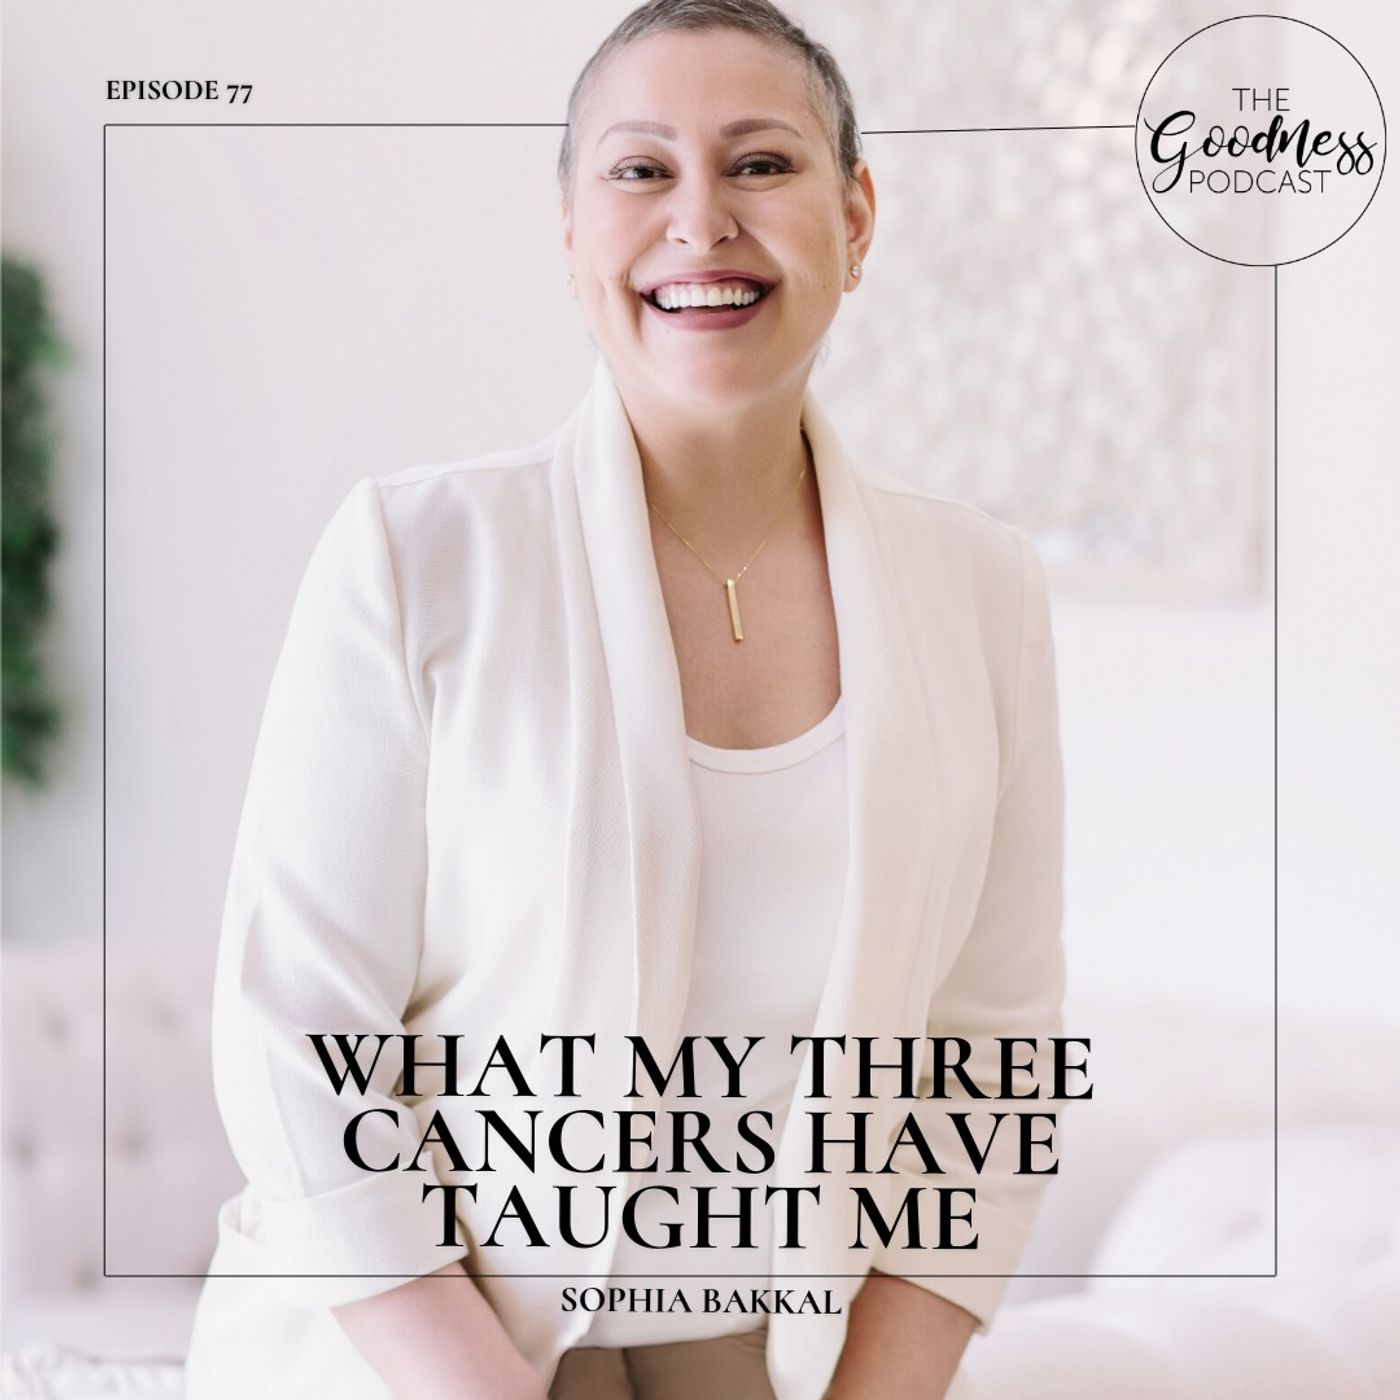 Sophia Bakkal: What My Three Cancers Have Taught Me